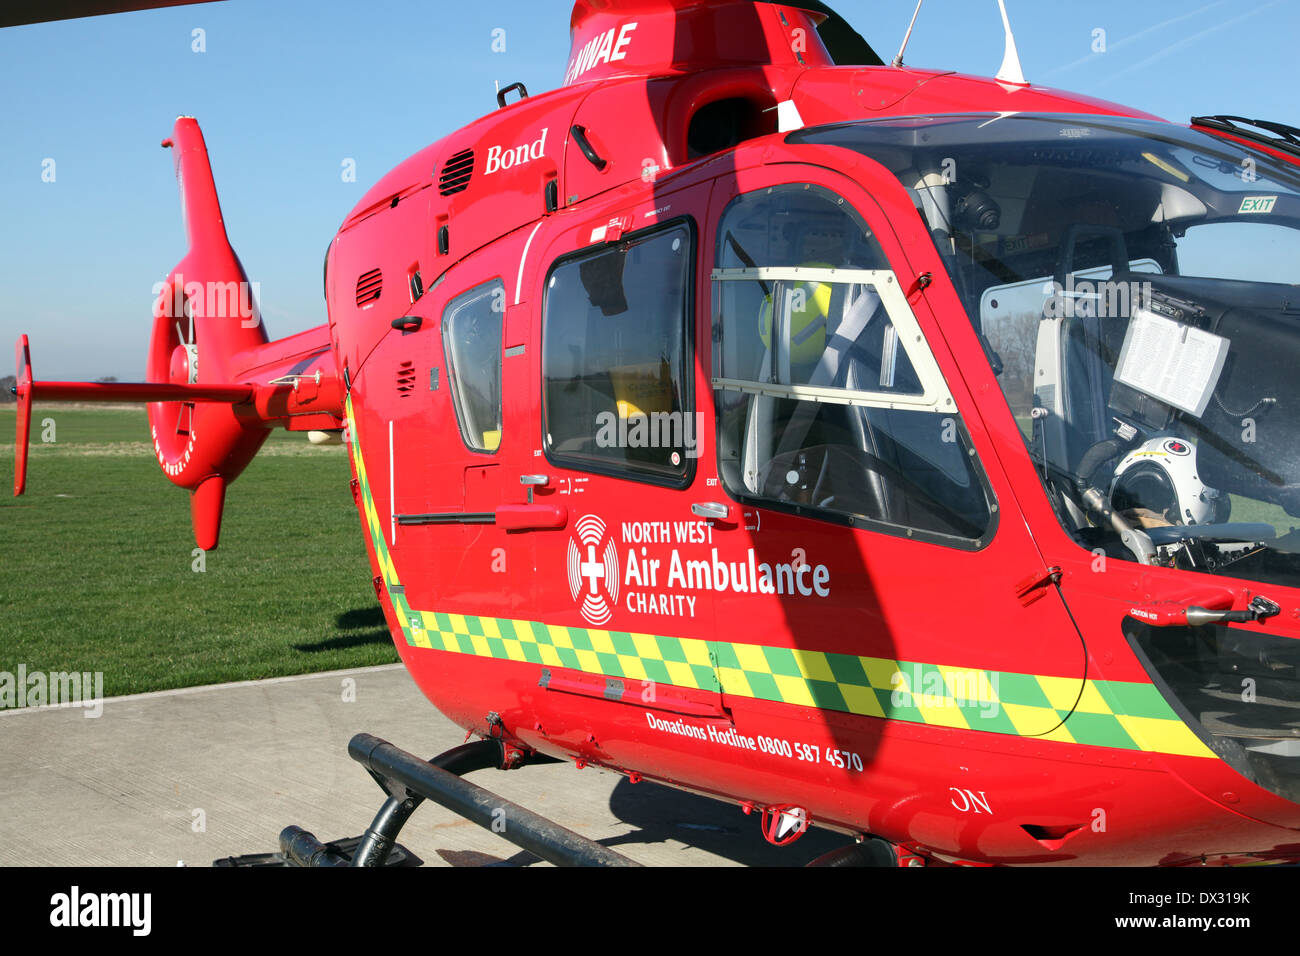 one of the three North West Air Ambulances, a red Eurocopter EC135 helicopter aircraft operated by Bond Air Services - Stock Image